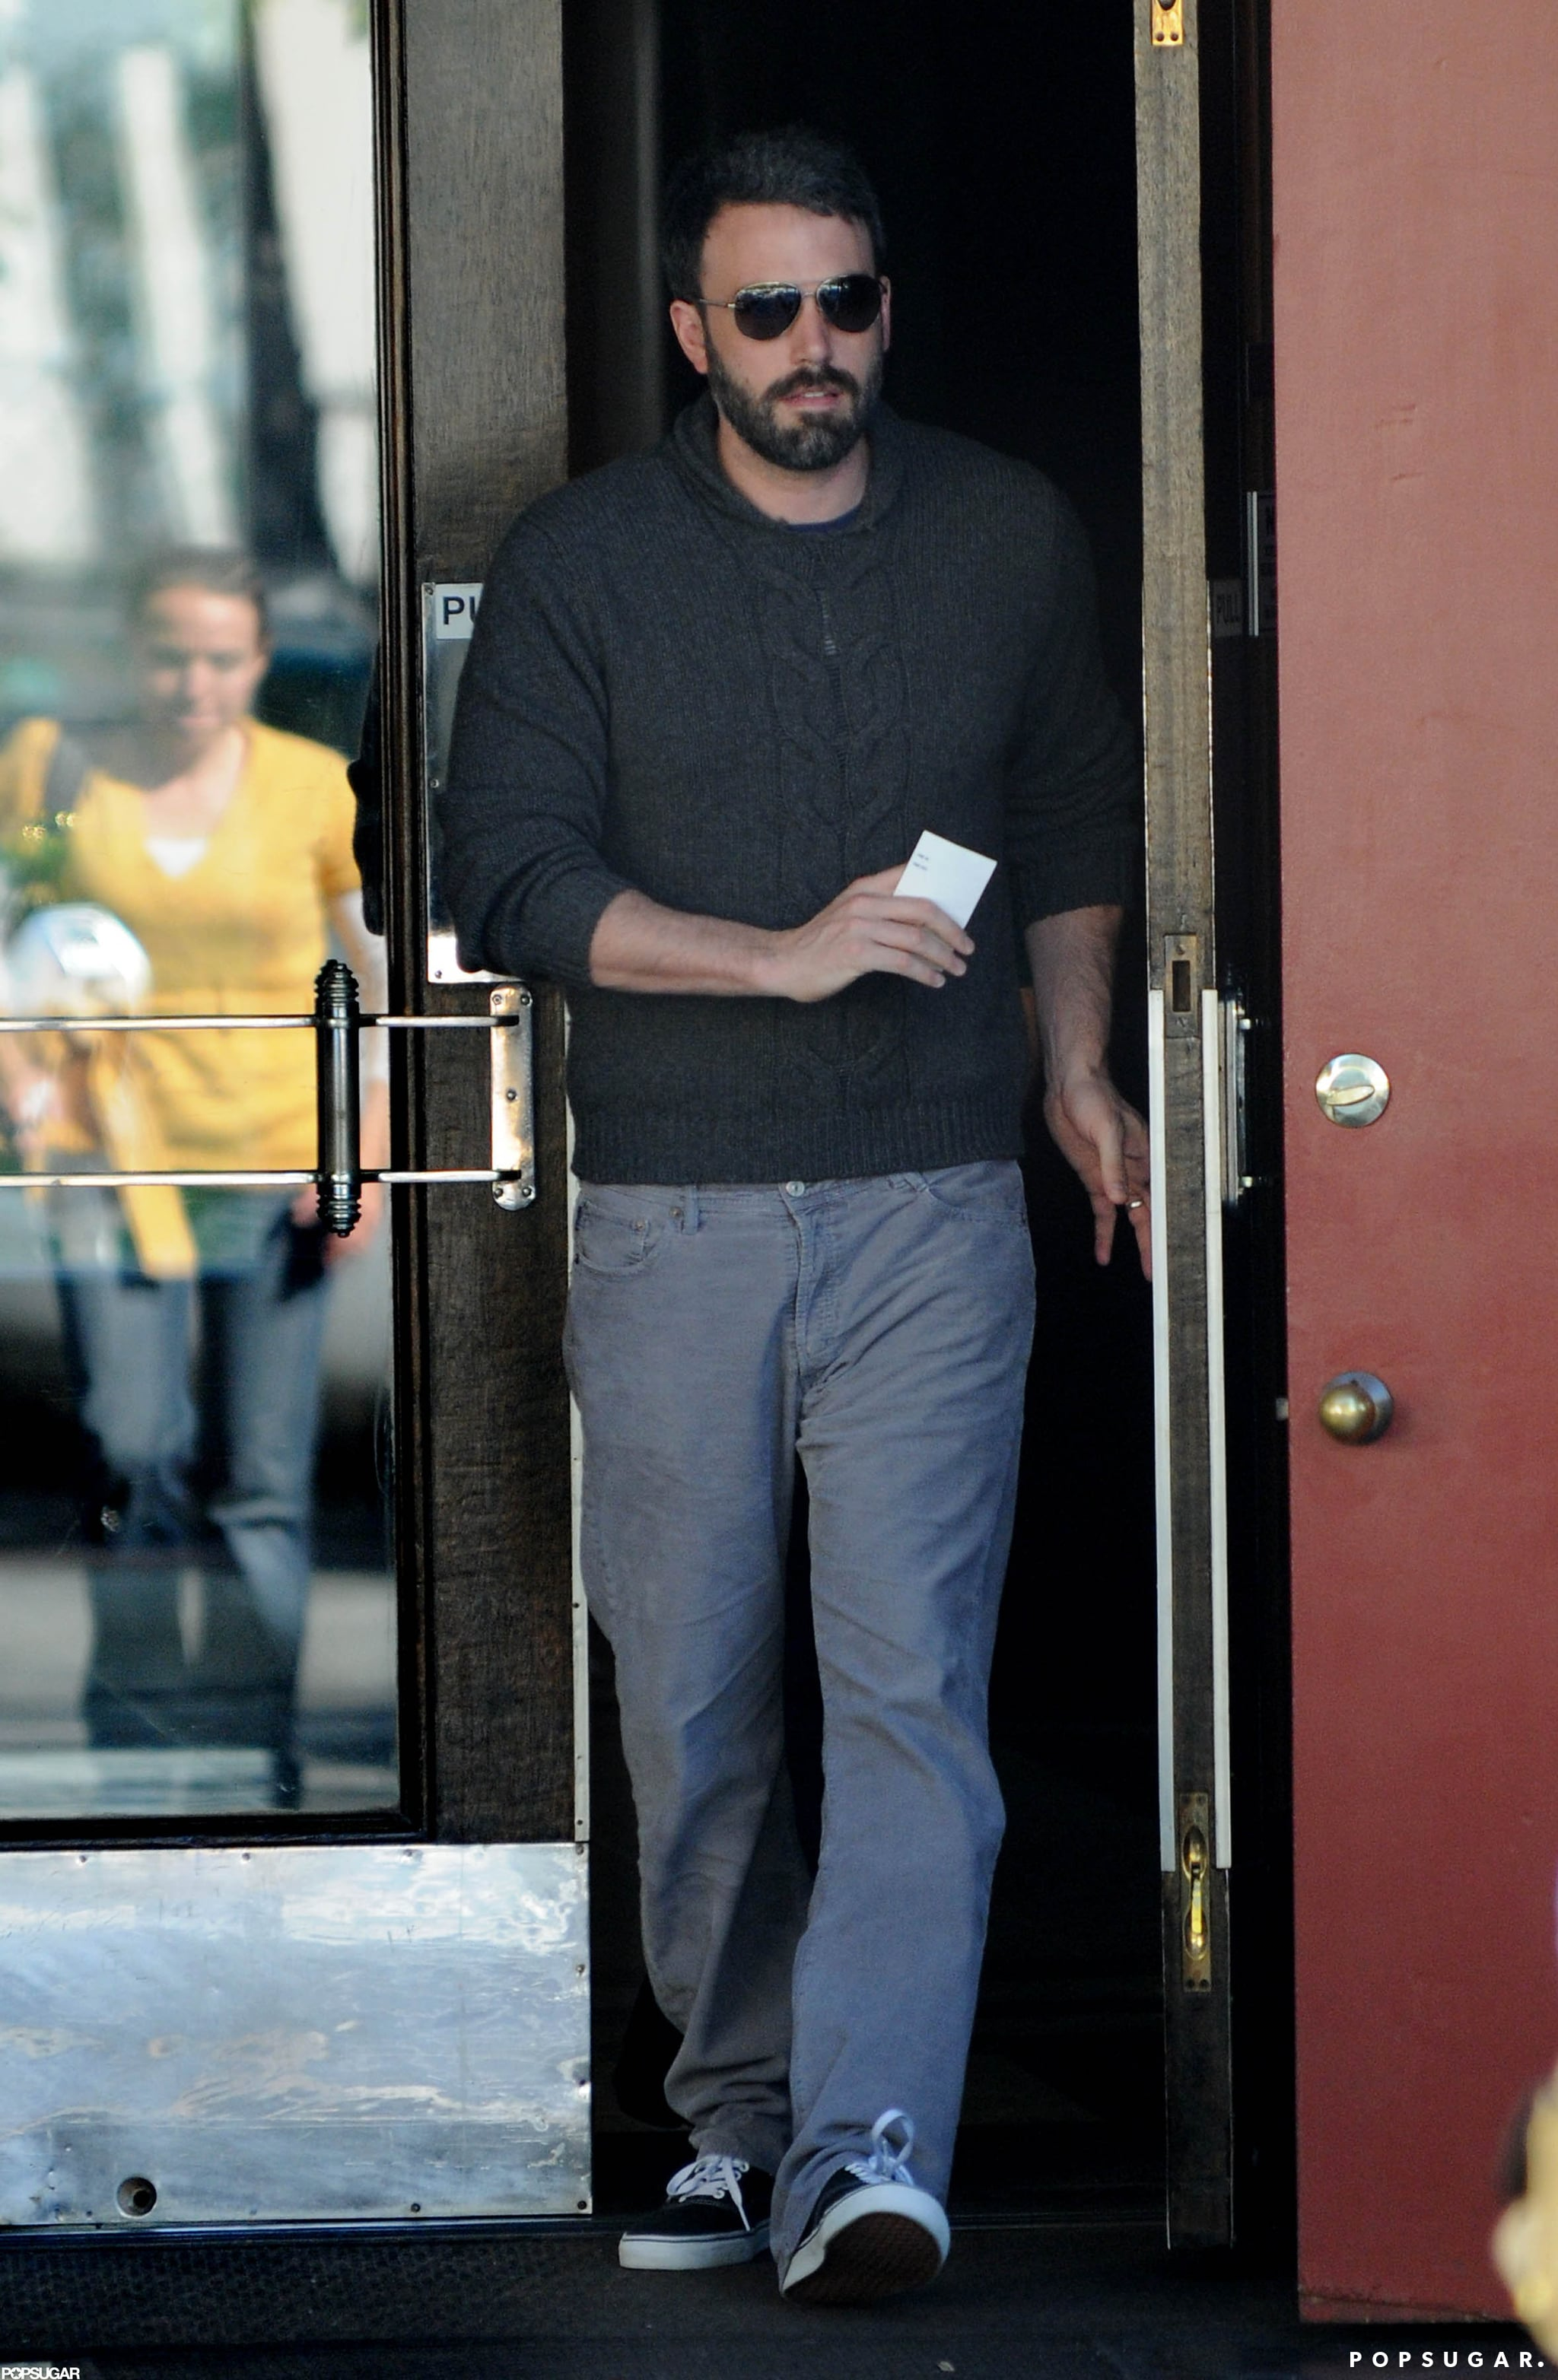 Ben Affleck ran errands with wife Jennifer Garner in LA.